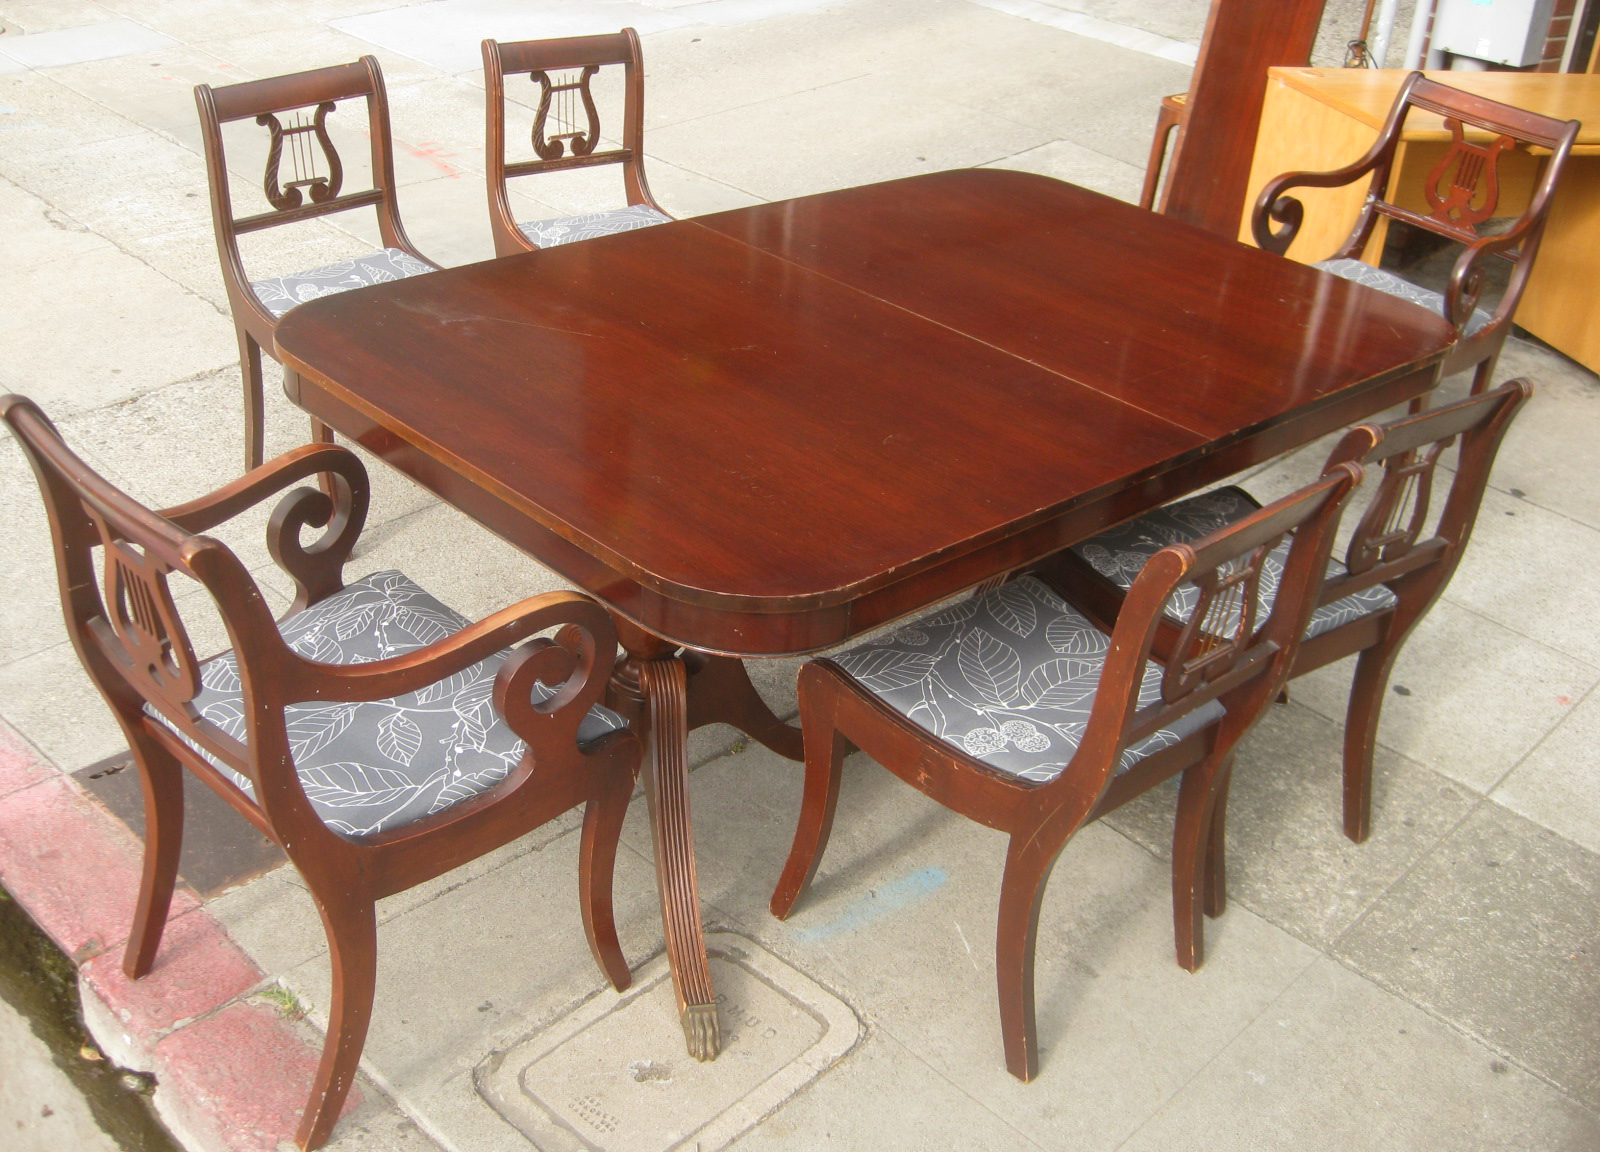 UHURU FURNITURE amp COLLECTIBLES SOLD Duncan Phyfe  : DPdining from uhurufurniture.blogspot.com size 1600 x 1152 jpeg 1040kB